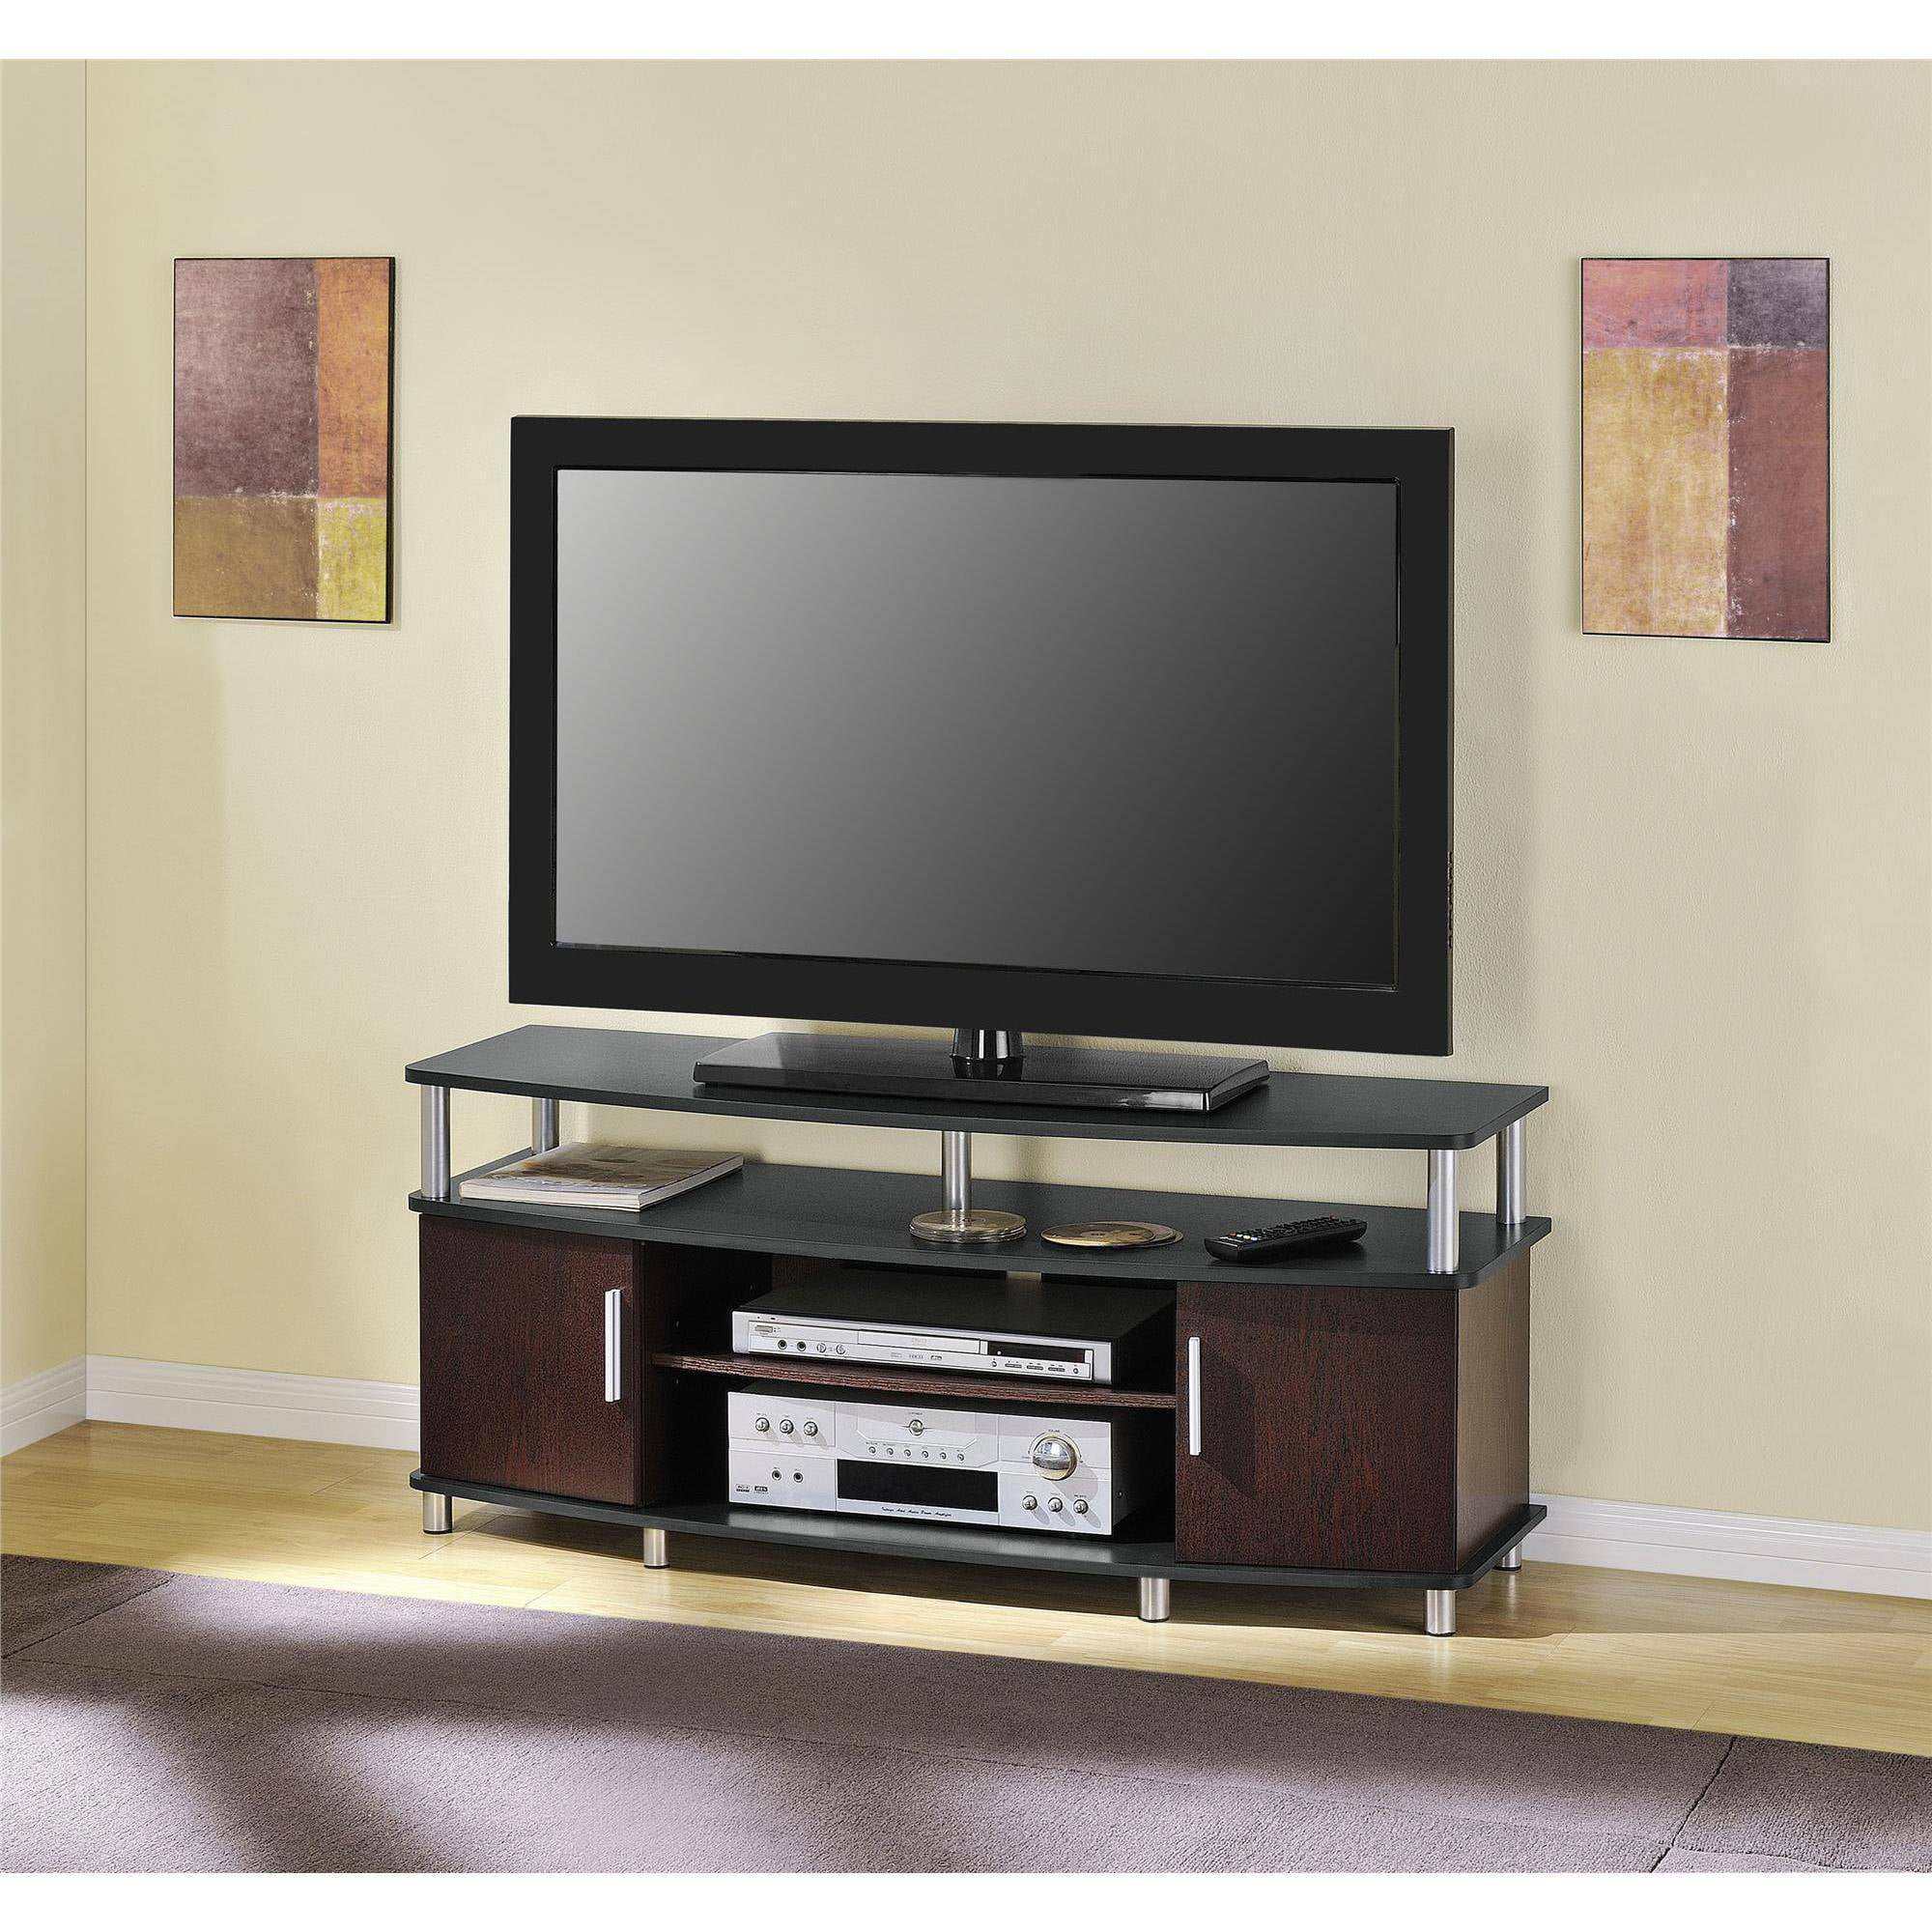 living room tv stand modern showcase designs carson for tvs up to 50 multiple finishes walmart com